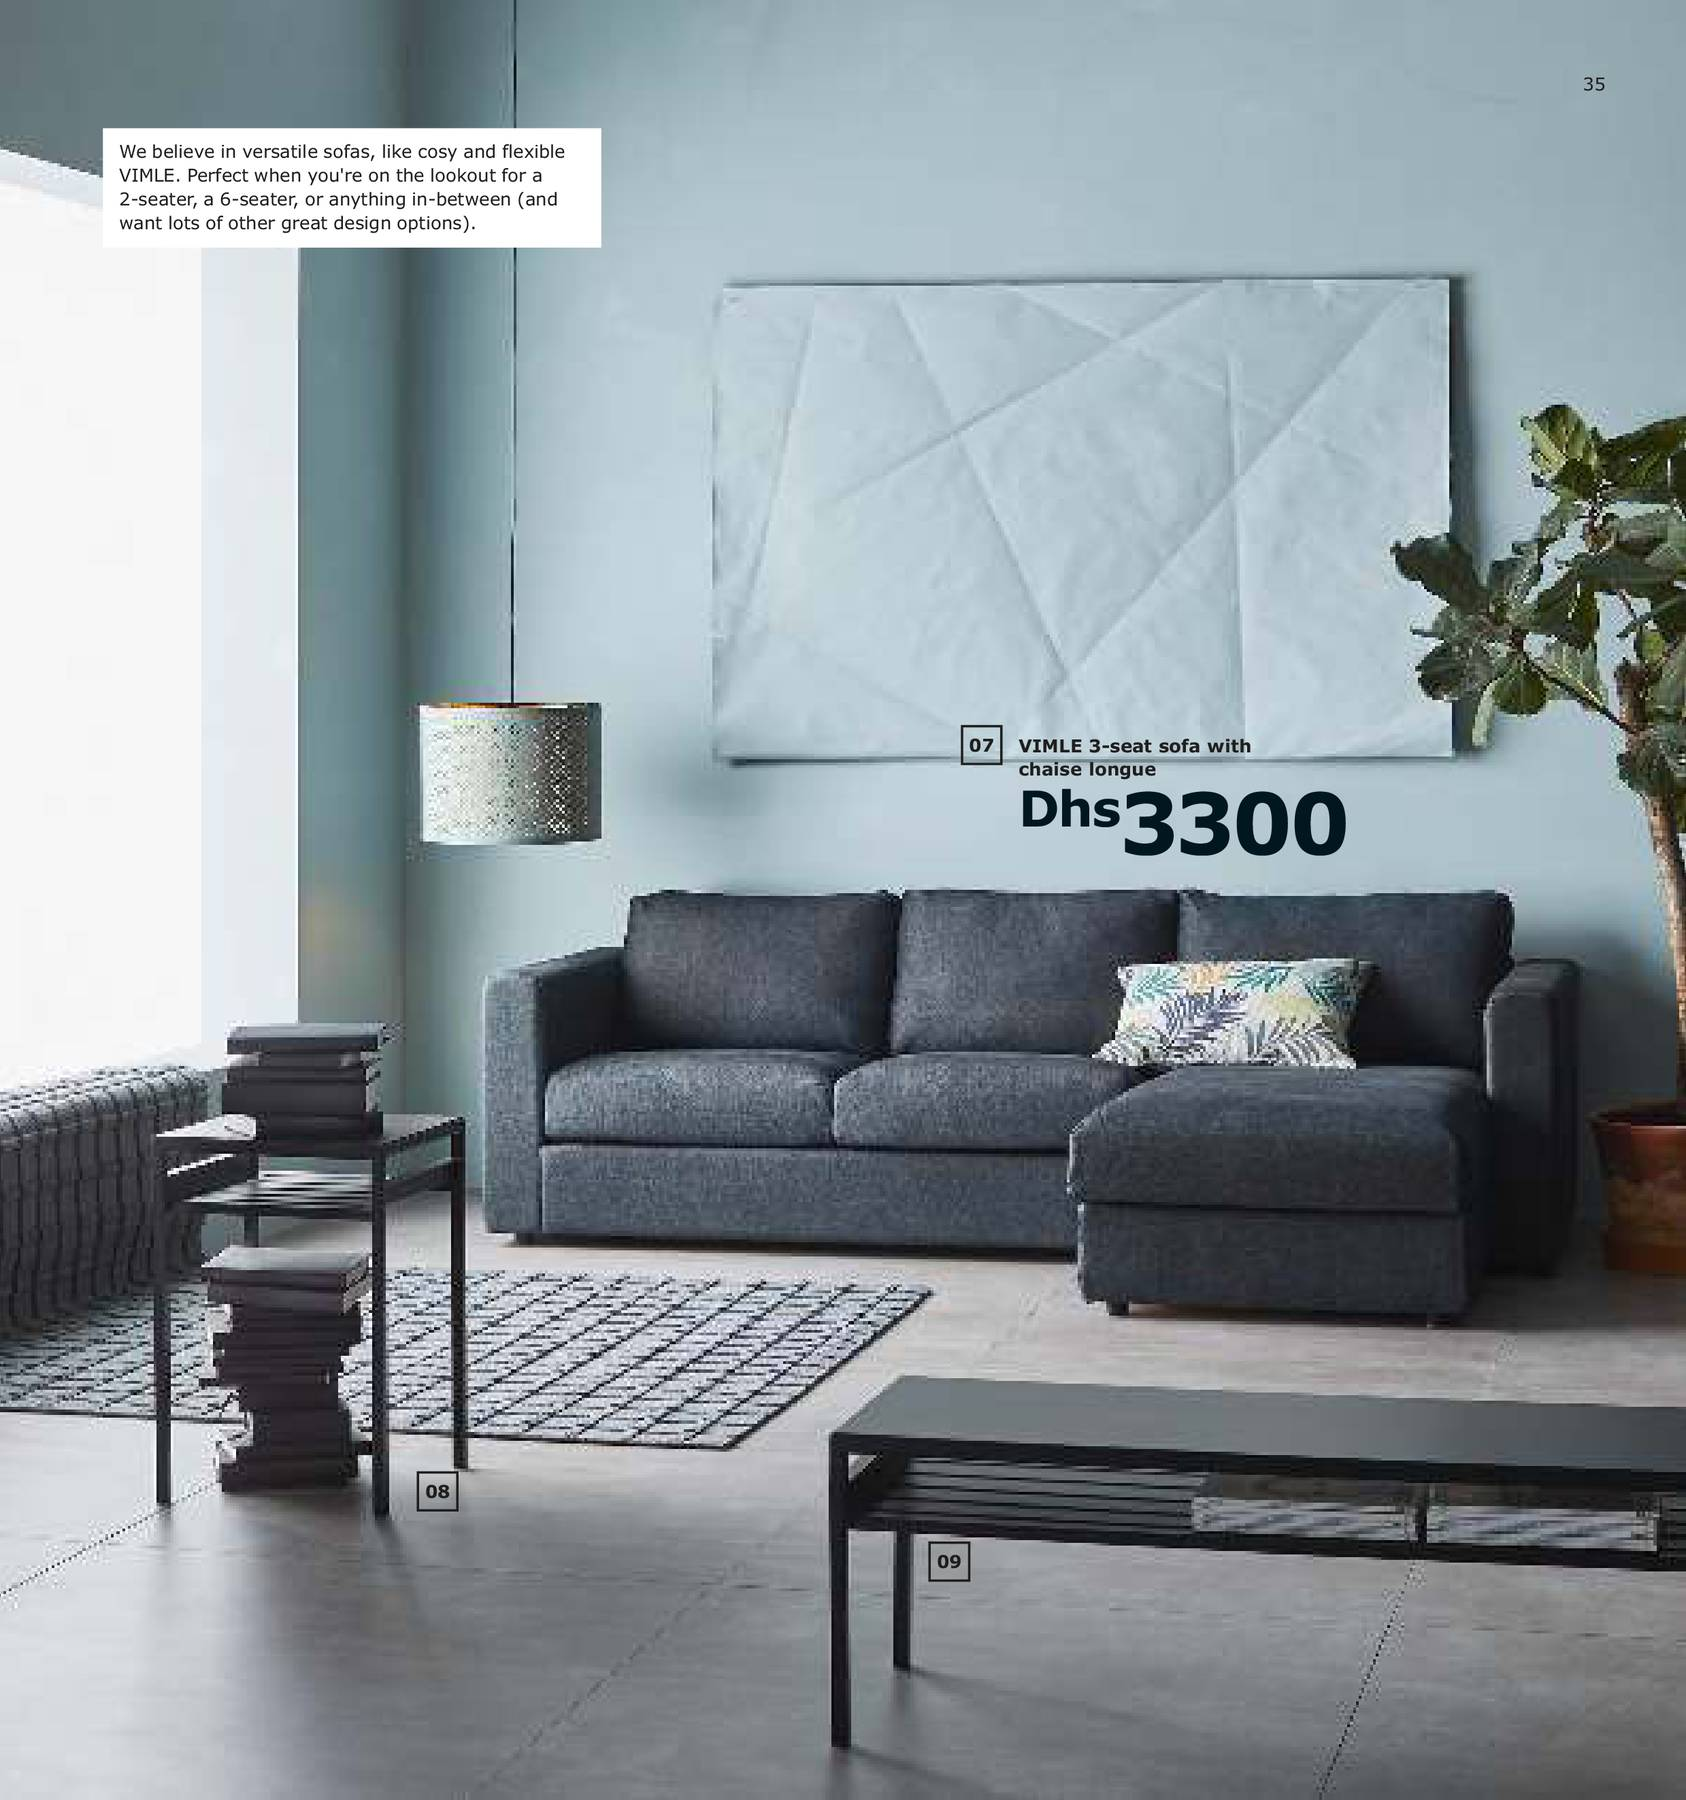 Vimle Sofa Ikea Dubai Best Furniture Offers From Ikea Until 31st July Ikea Offers